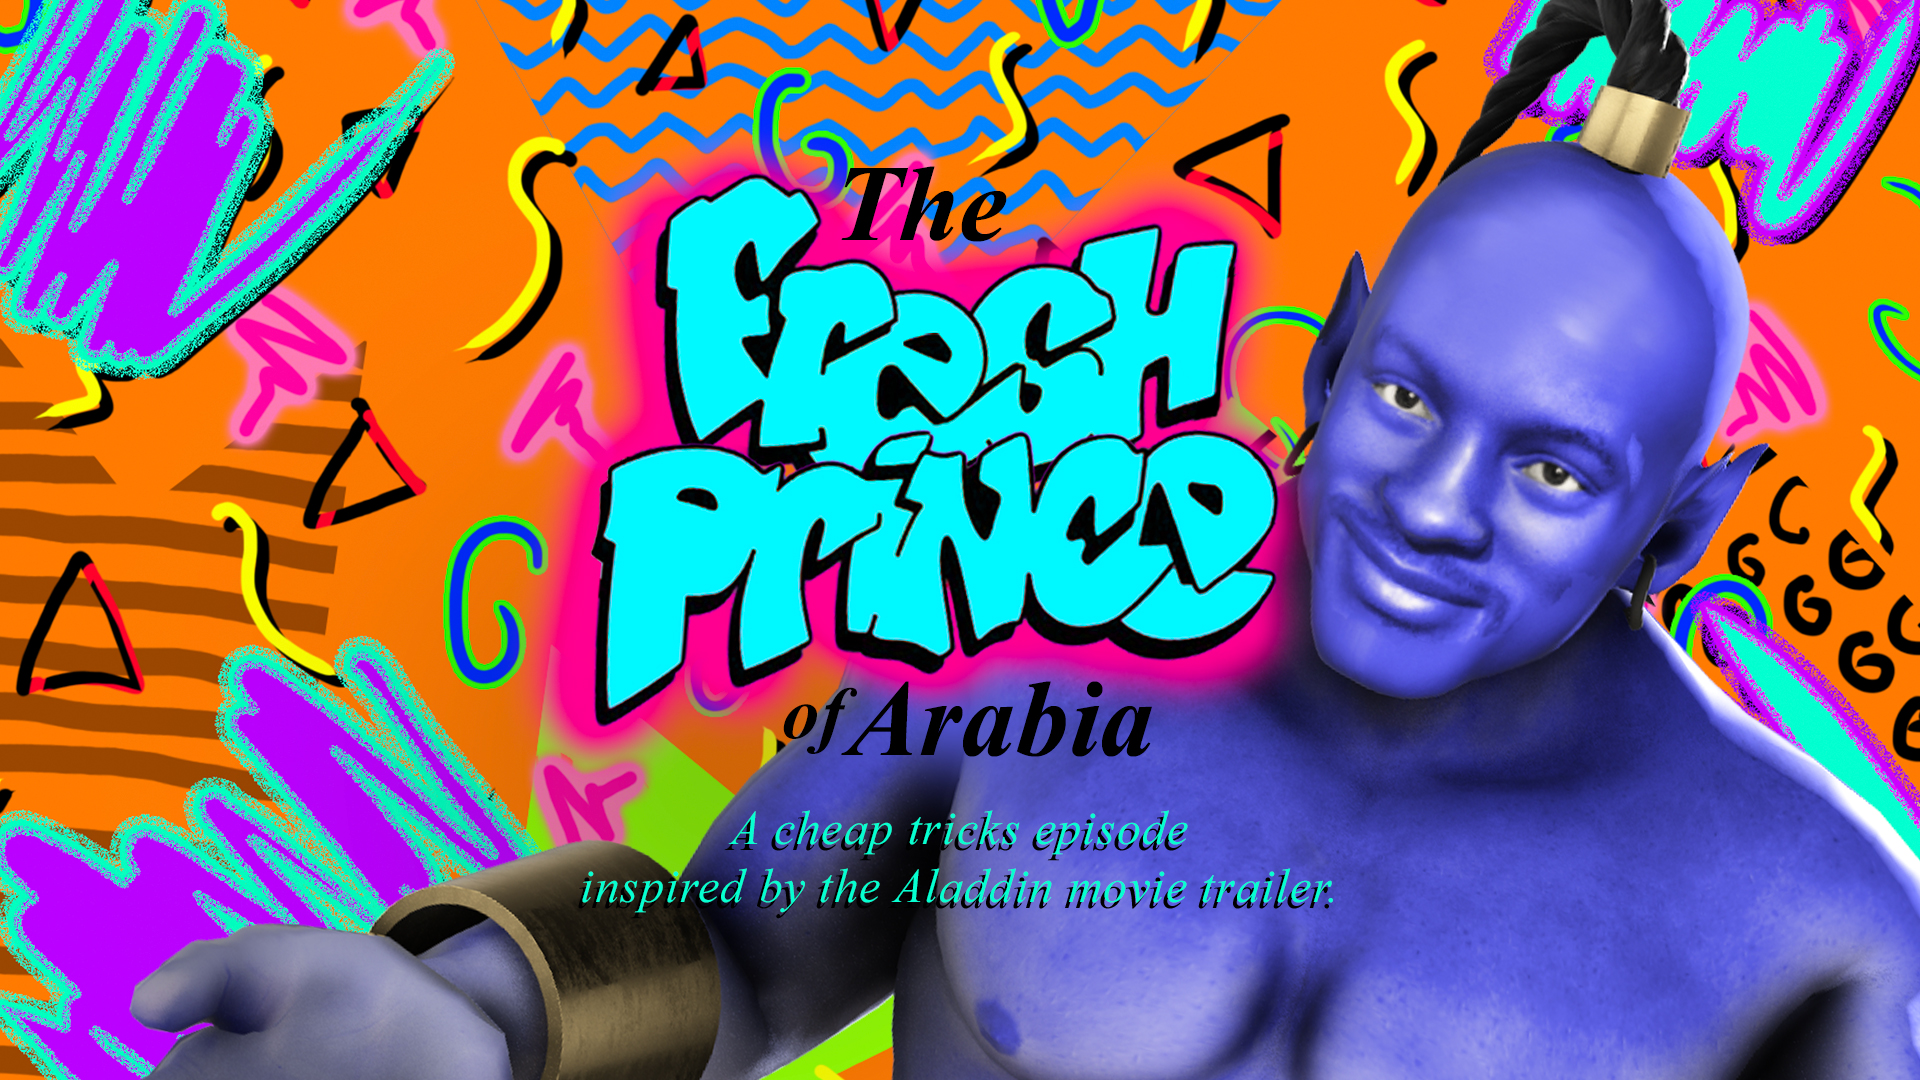 Cheap Tricks #6: The Fresh Prince of Arabia